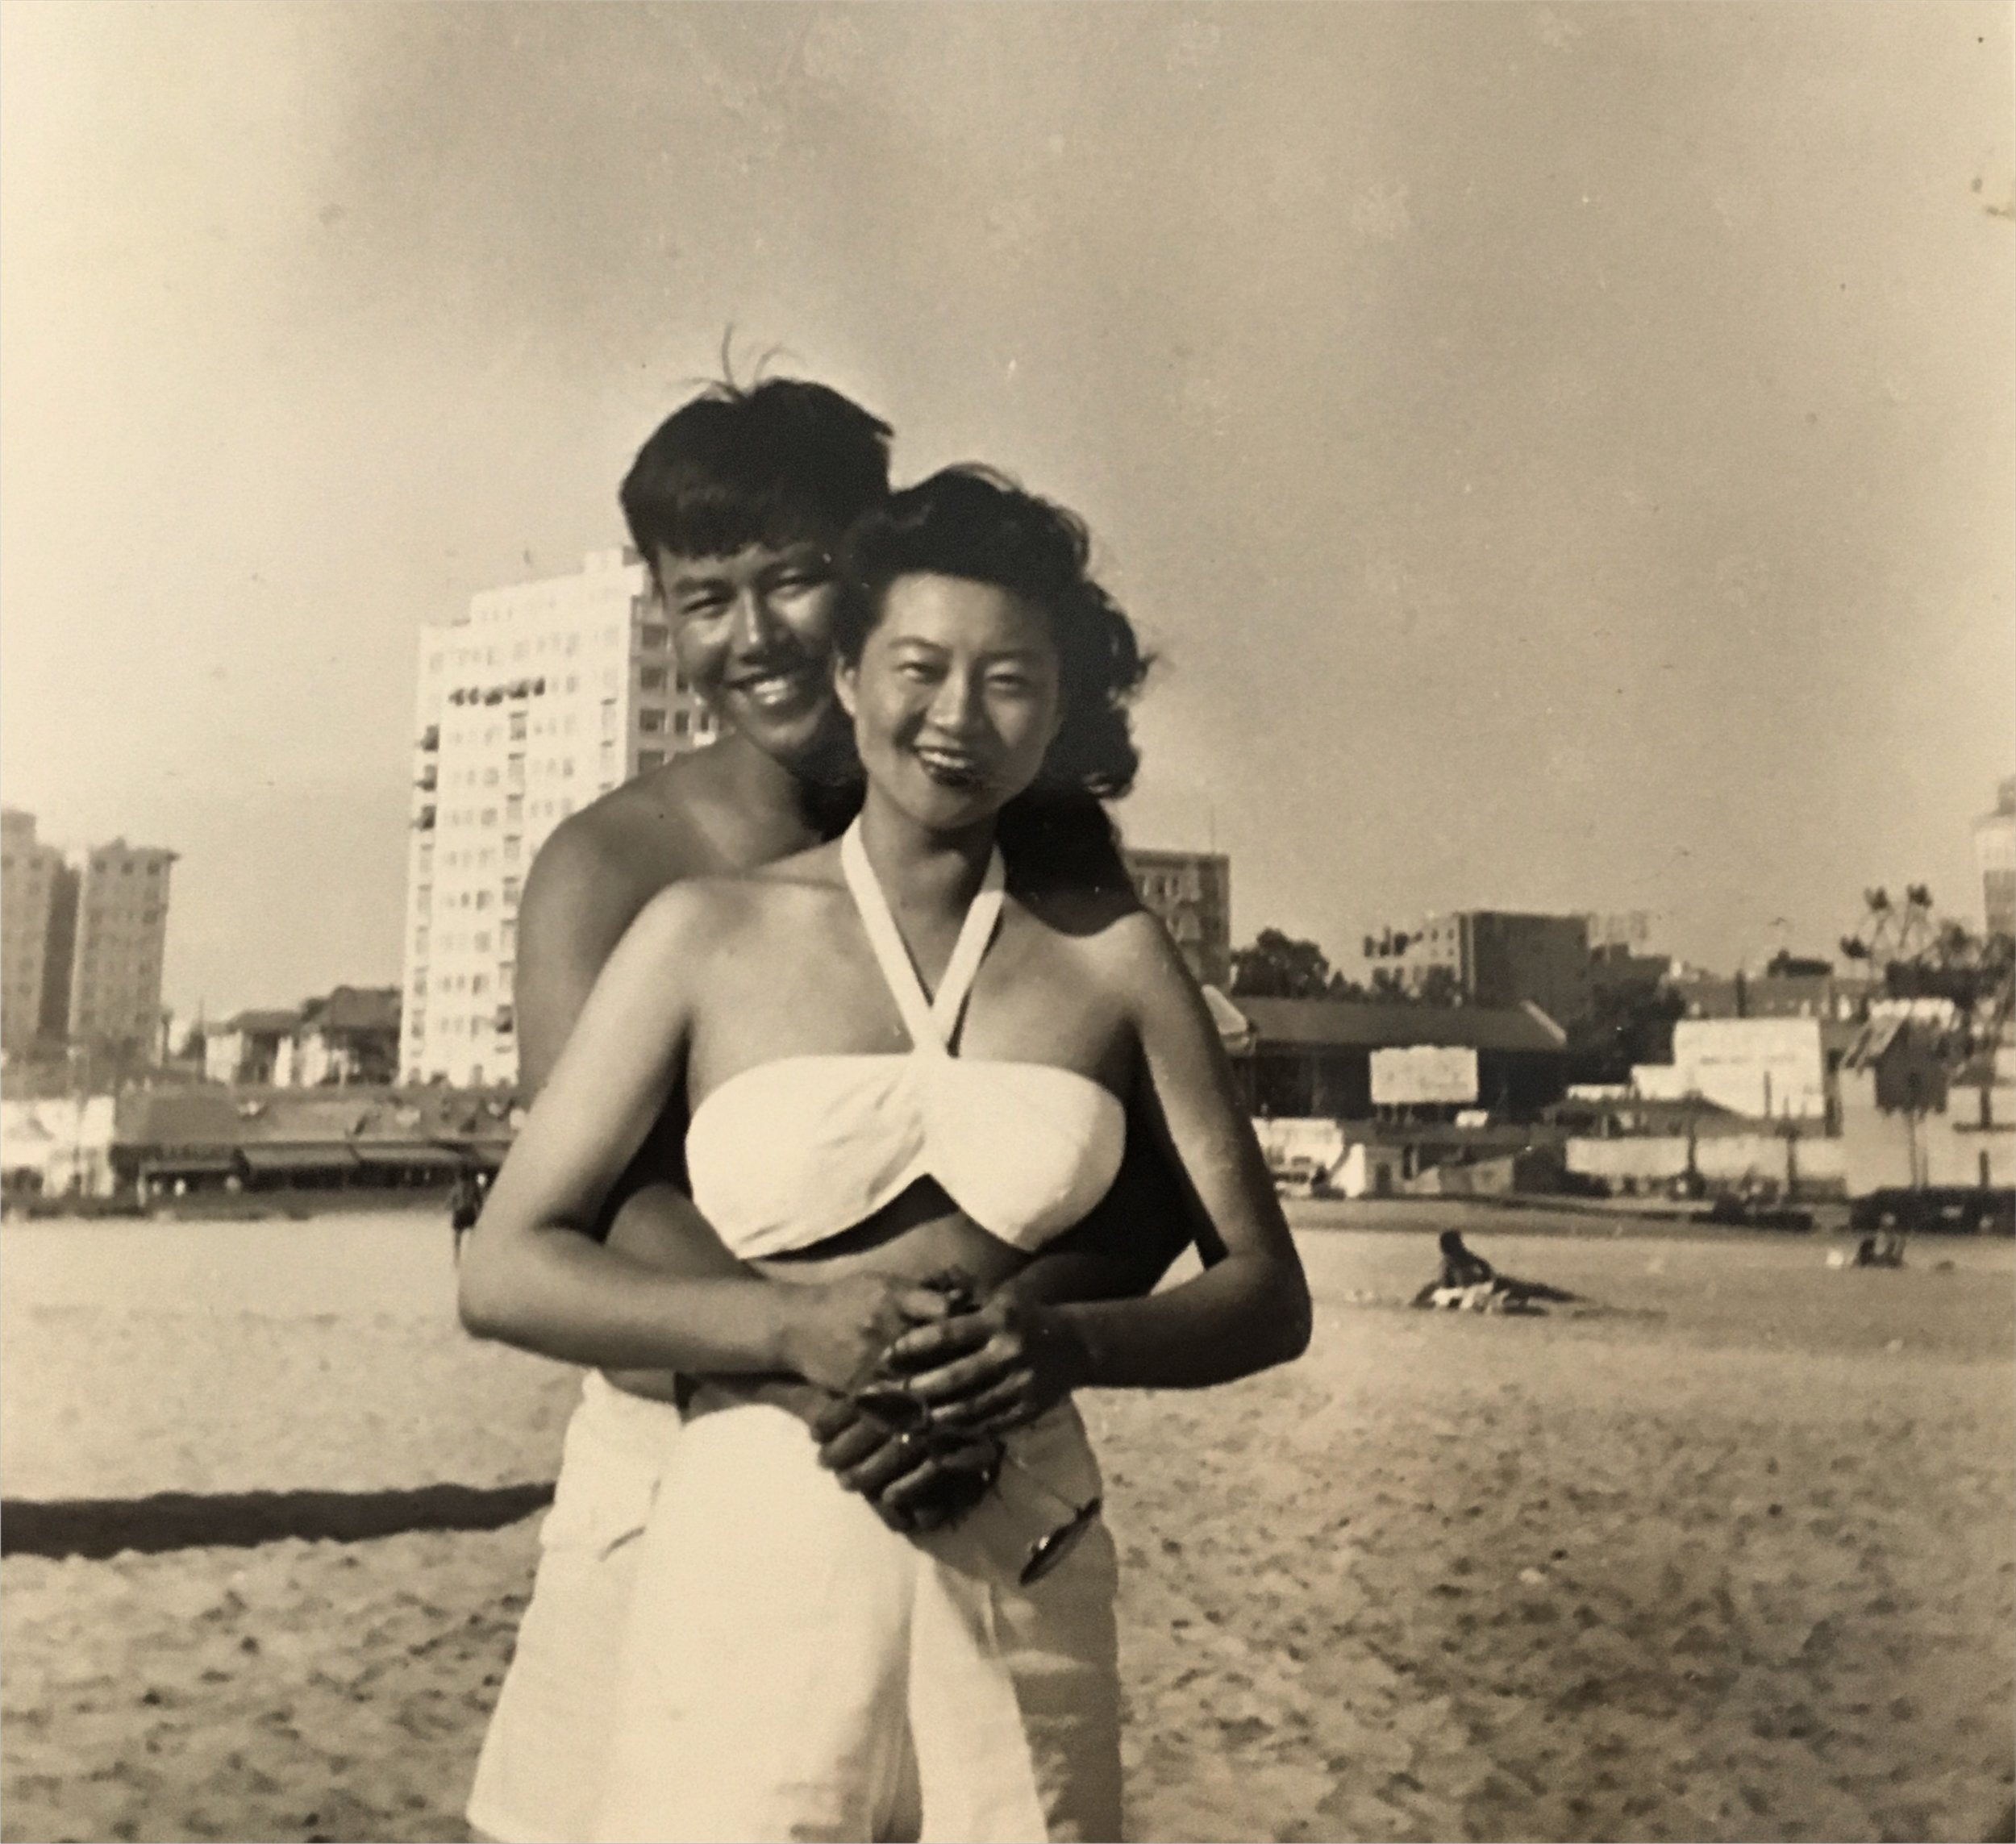 George and Mary at a beach in Southern California